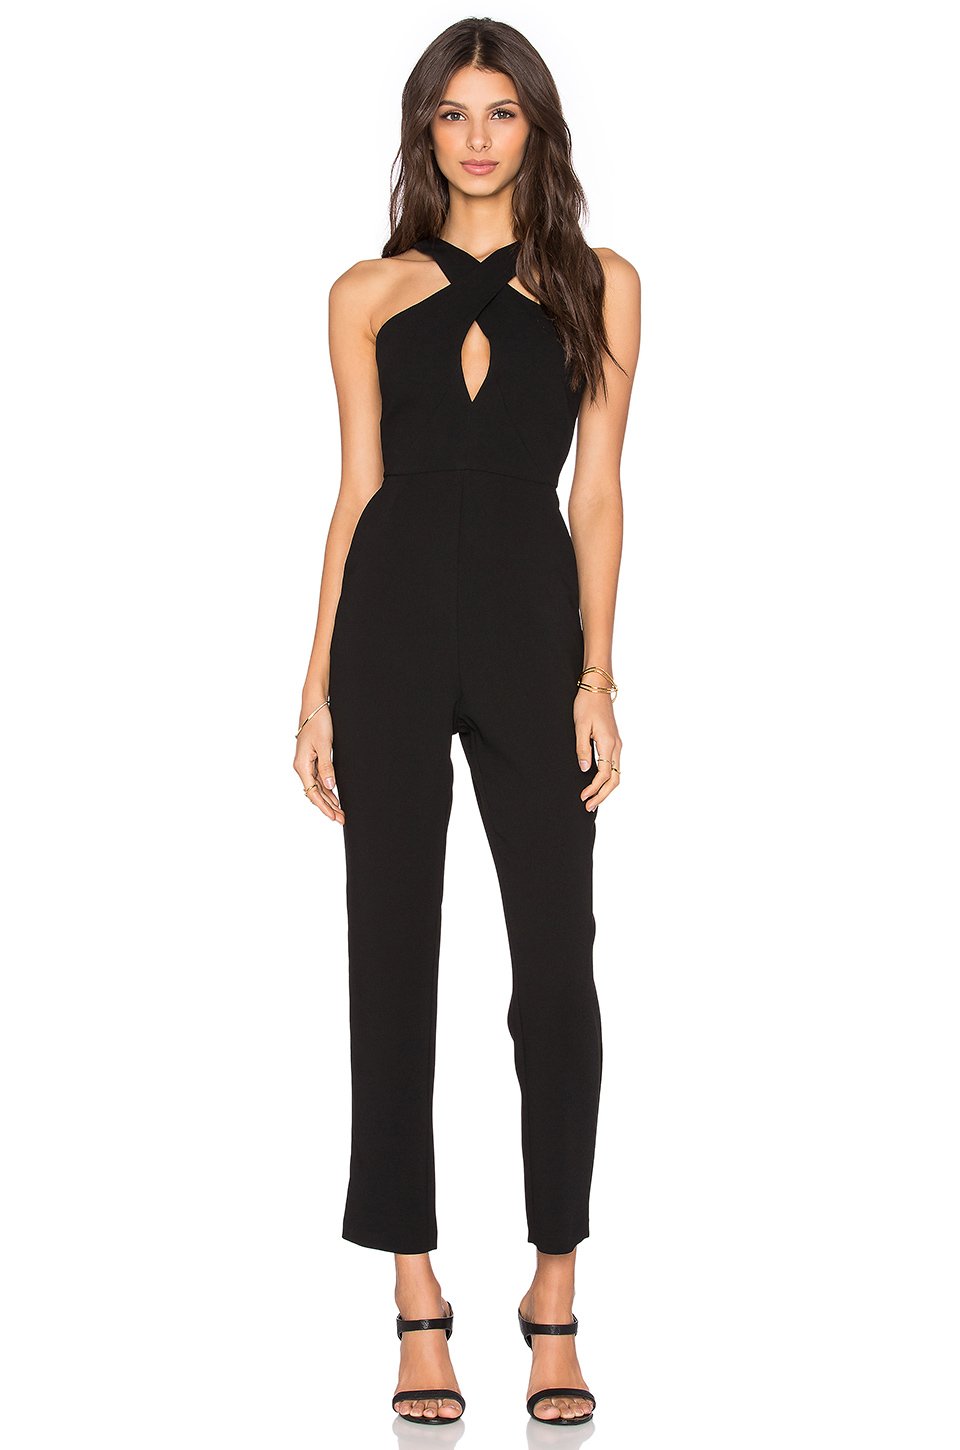 6498894dd0 Skinny Leg Black Jumpsuit - Noisey Clothing